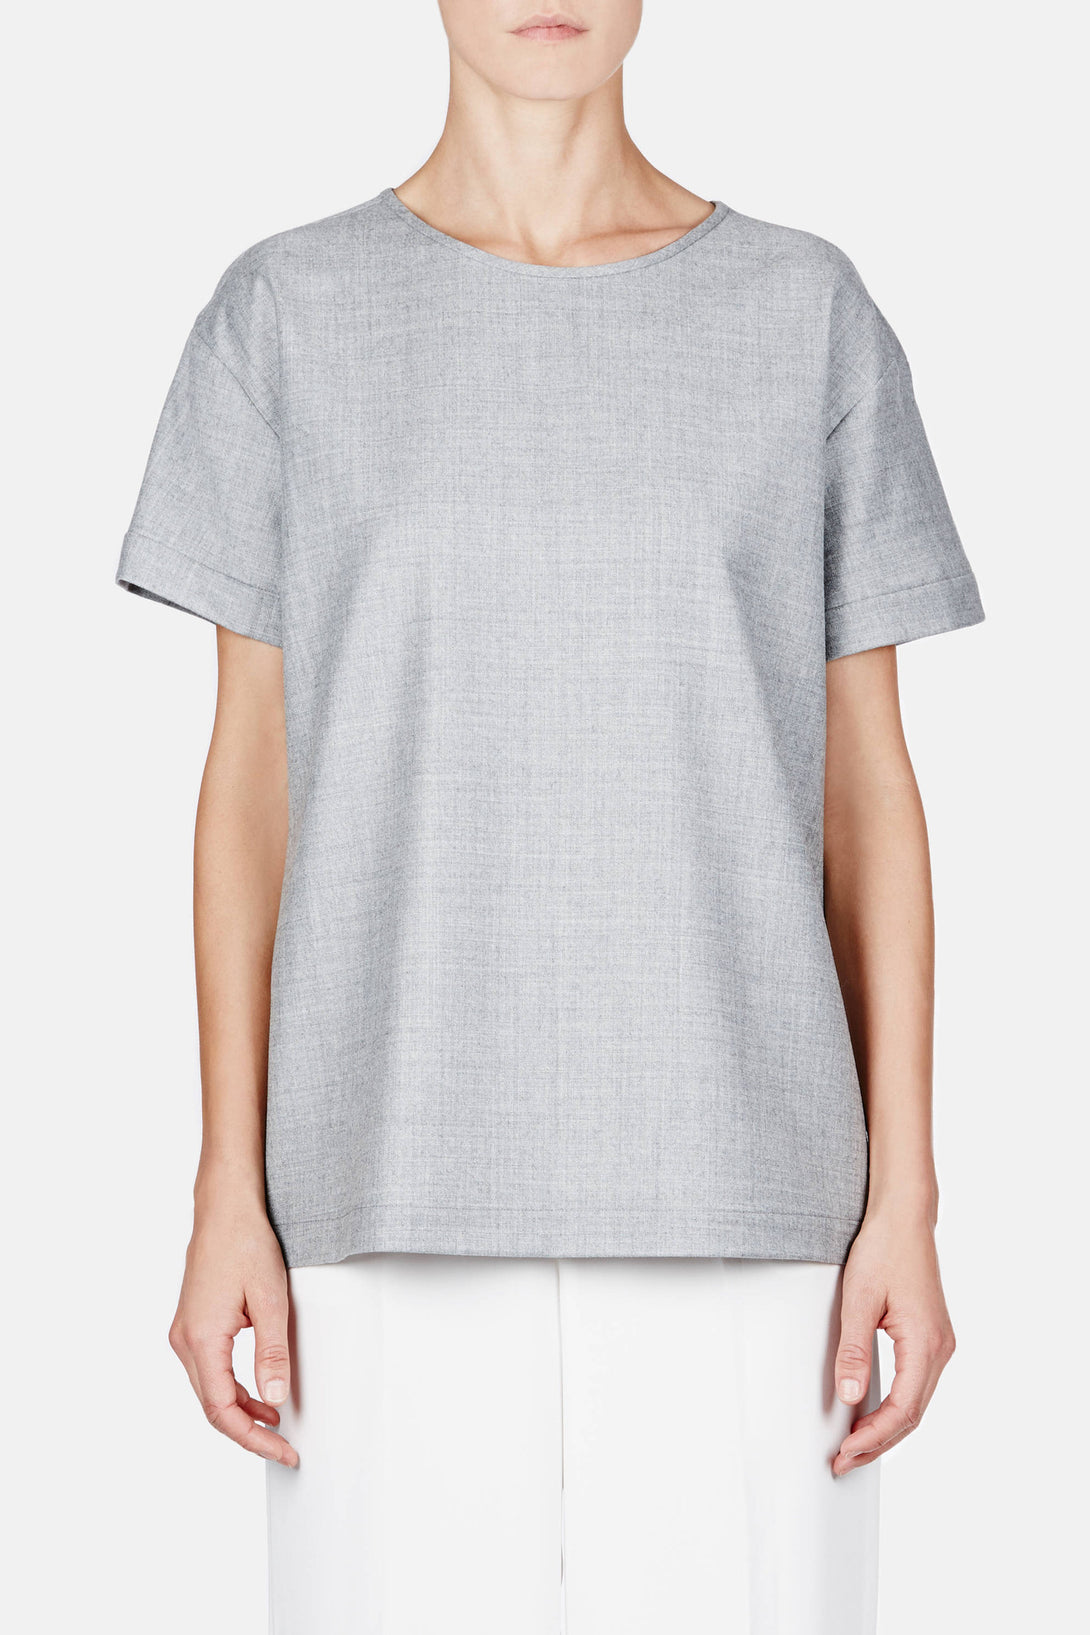 T-Shirt 03 Oversize T - Heathered Grey